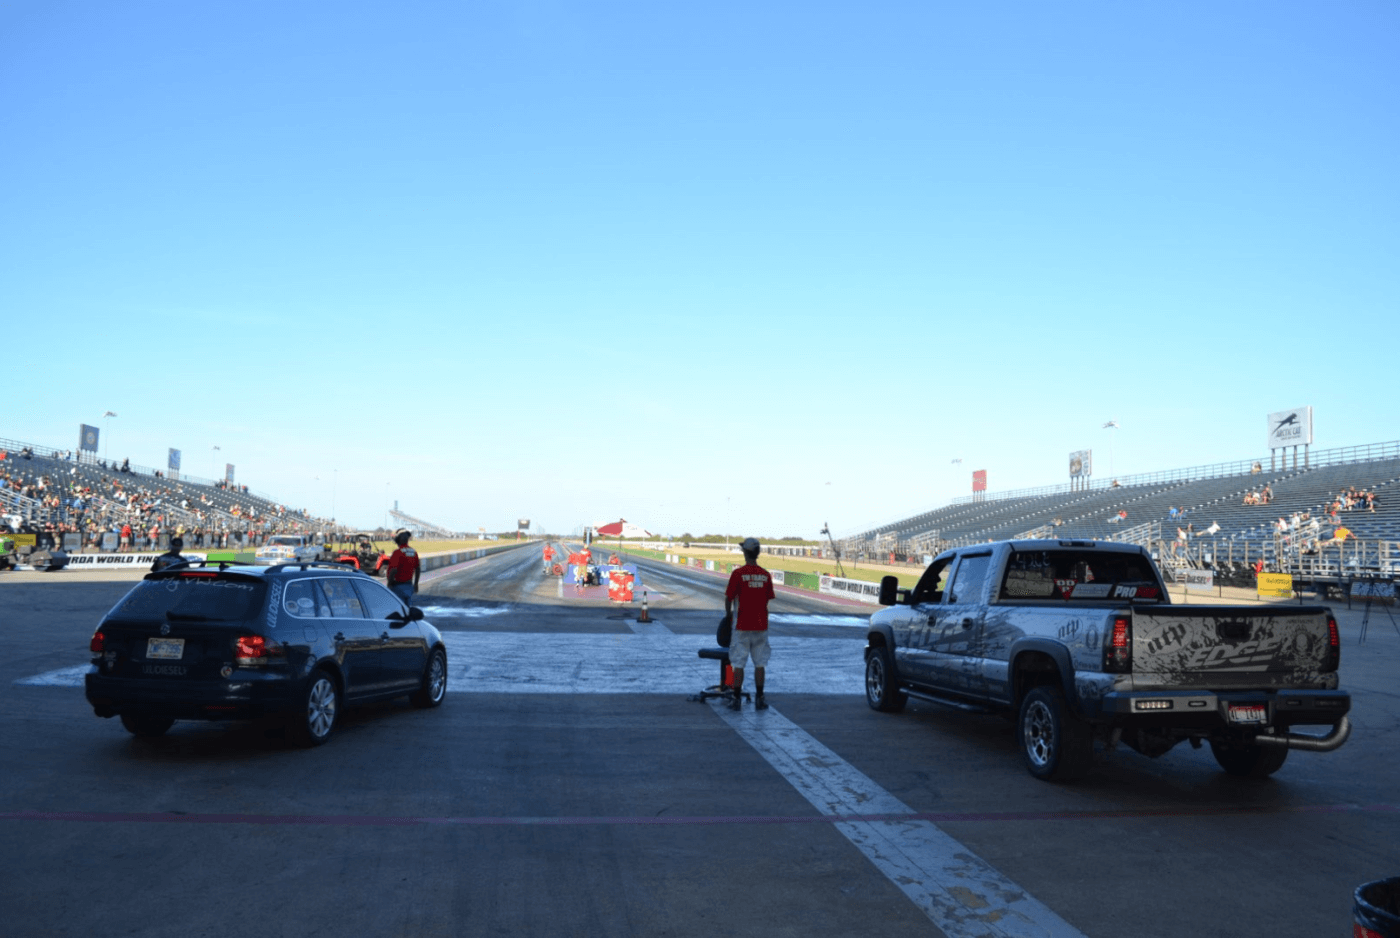 The Sporstsman class final came down to Verlon Southwick (who'd already won Super Diesel) and Trey Sikes, who piloted his diesel-powered Jetta to a close win over Verlon.